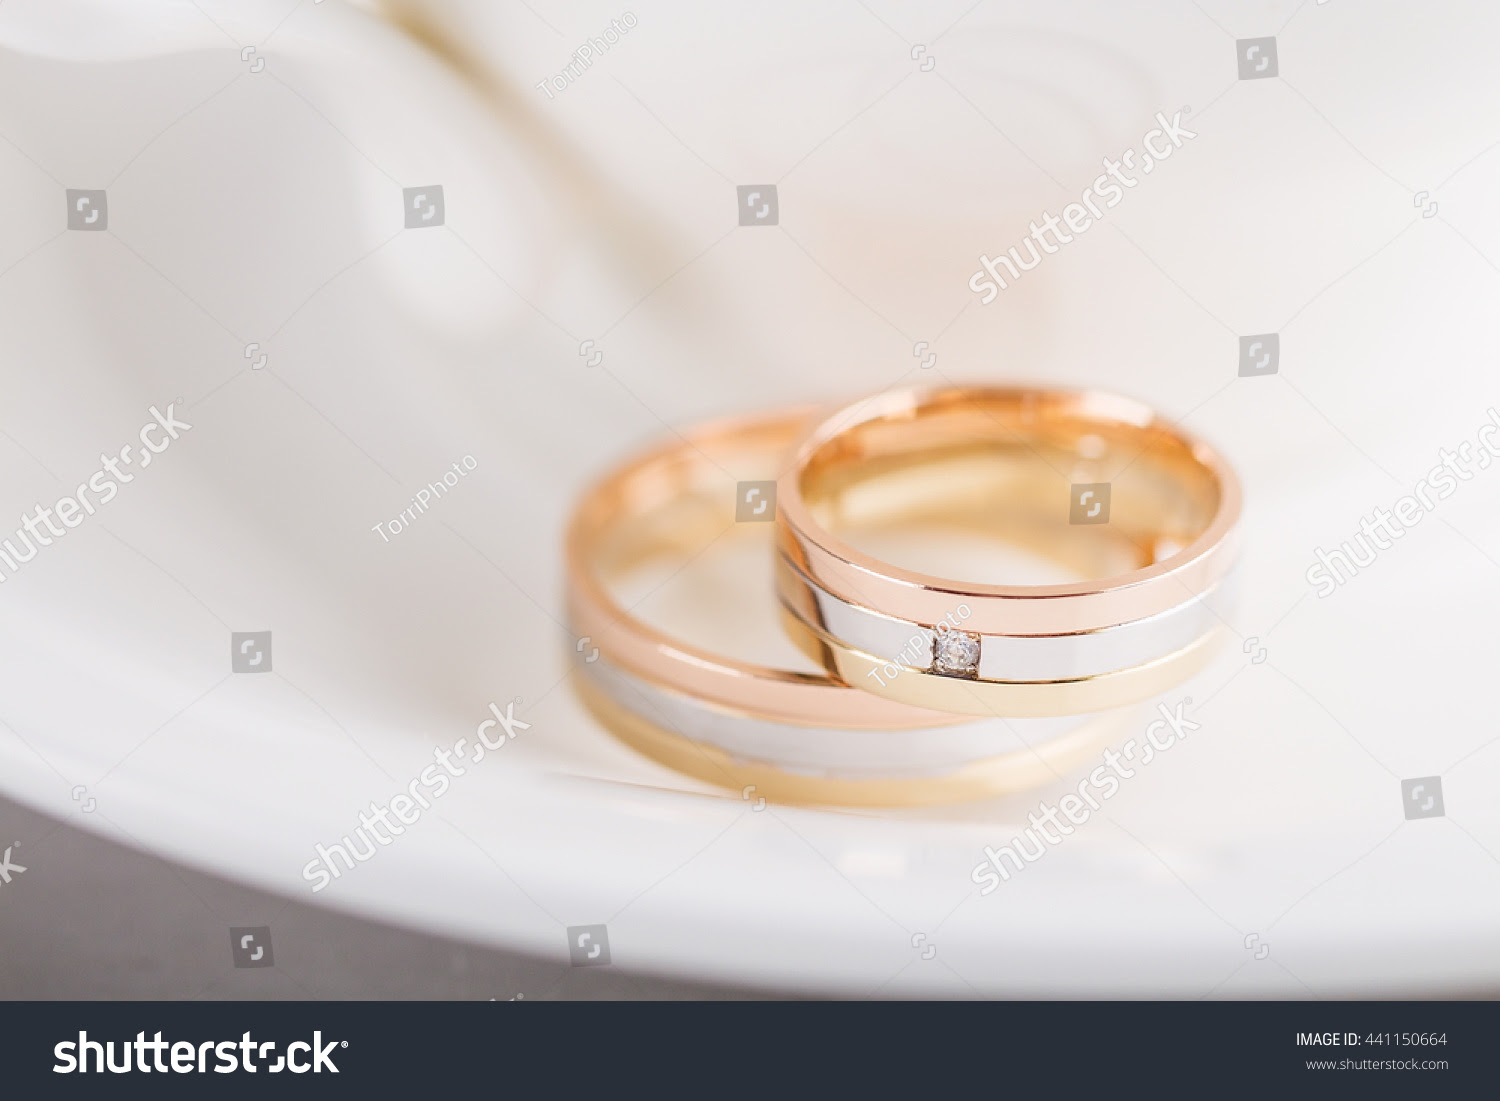 accessory, anniversary, beauty, betrothal, bridal, brilliant, celebrate, celebration, ceremony, circle, closeup, color, copy, copyspase, couple, diamond, engagement, feeling, gold, golden, happy, invitation, jewel, jewelery, jewelry, love, luxury, macro, marital, marriage, marry, metal, pair, precious, relationship, ring, romance, romantic, round, shiny, space, symbol, text, three, tradition, traditional, two, wedding, white